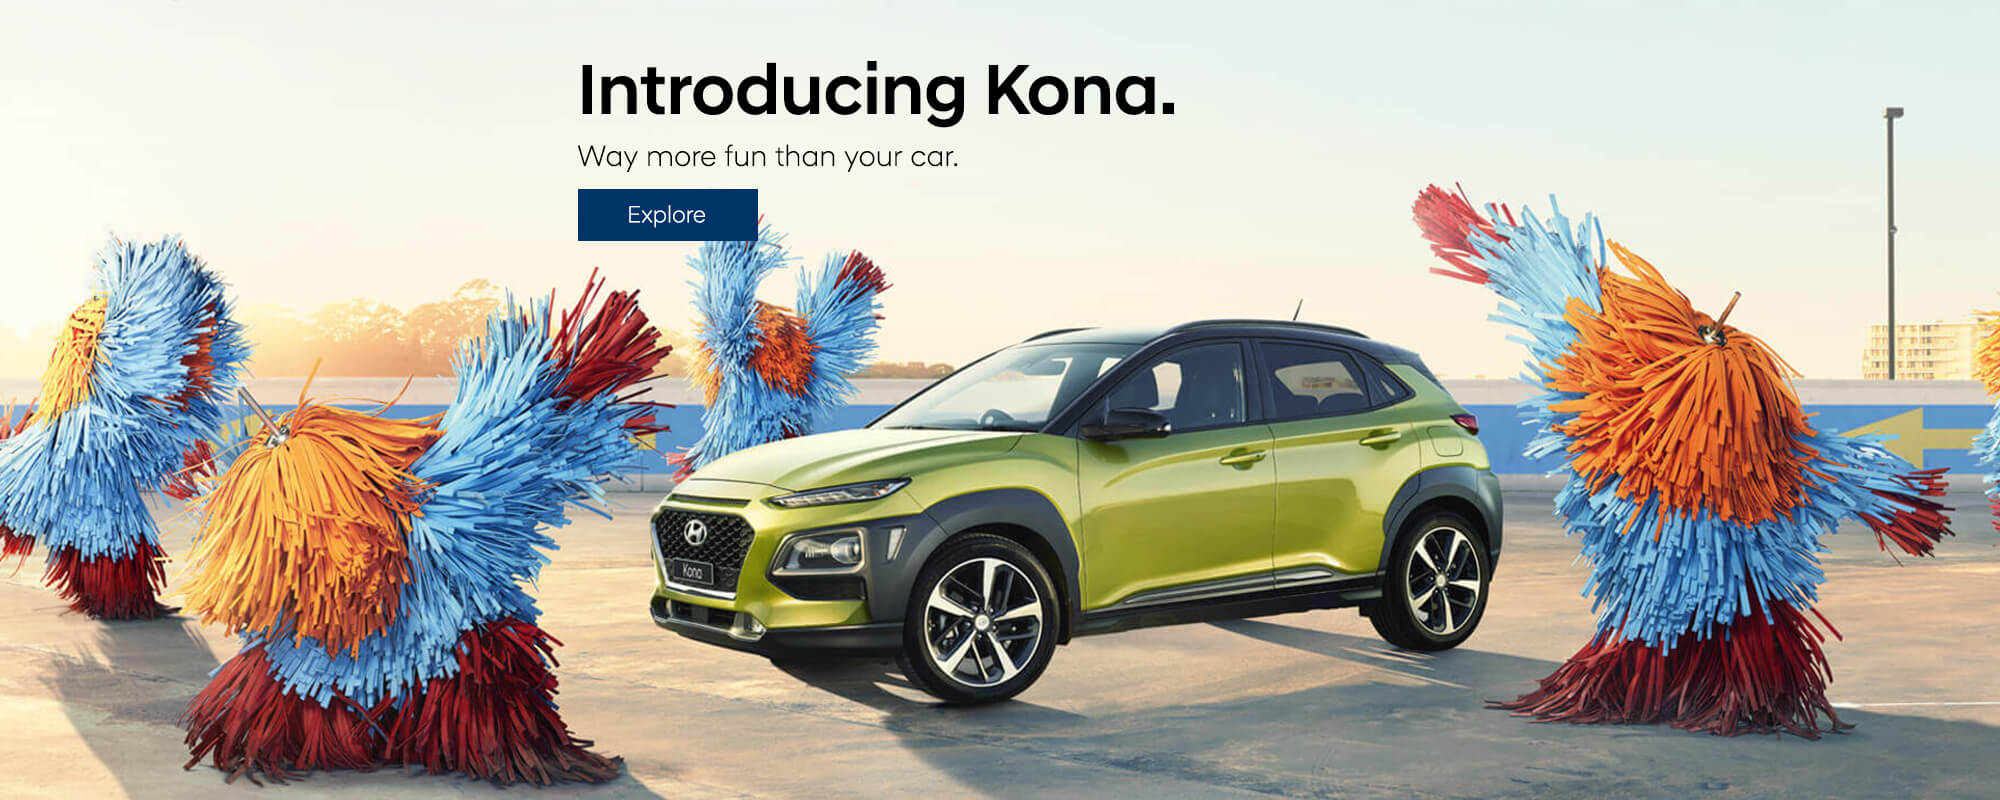 All-New Kona